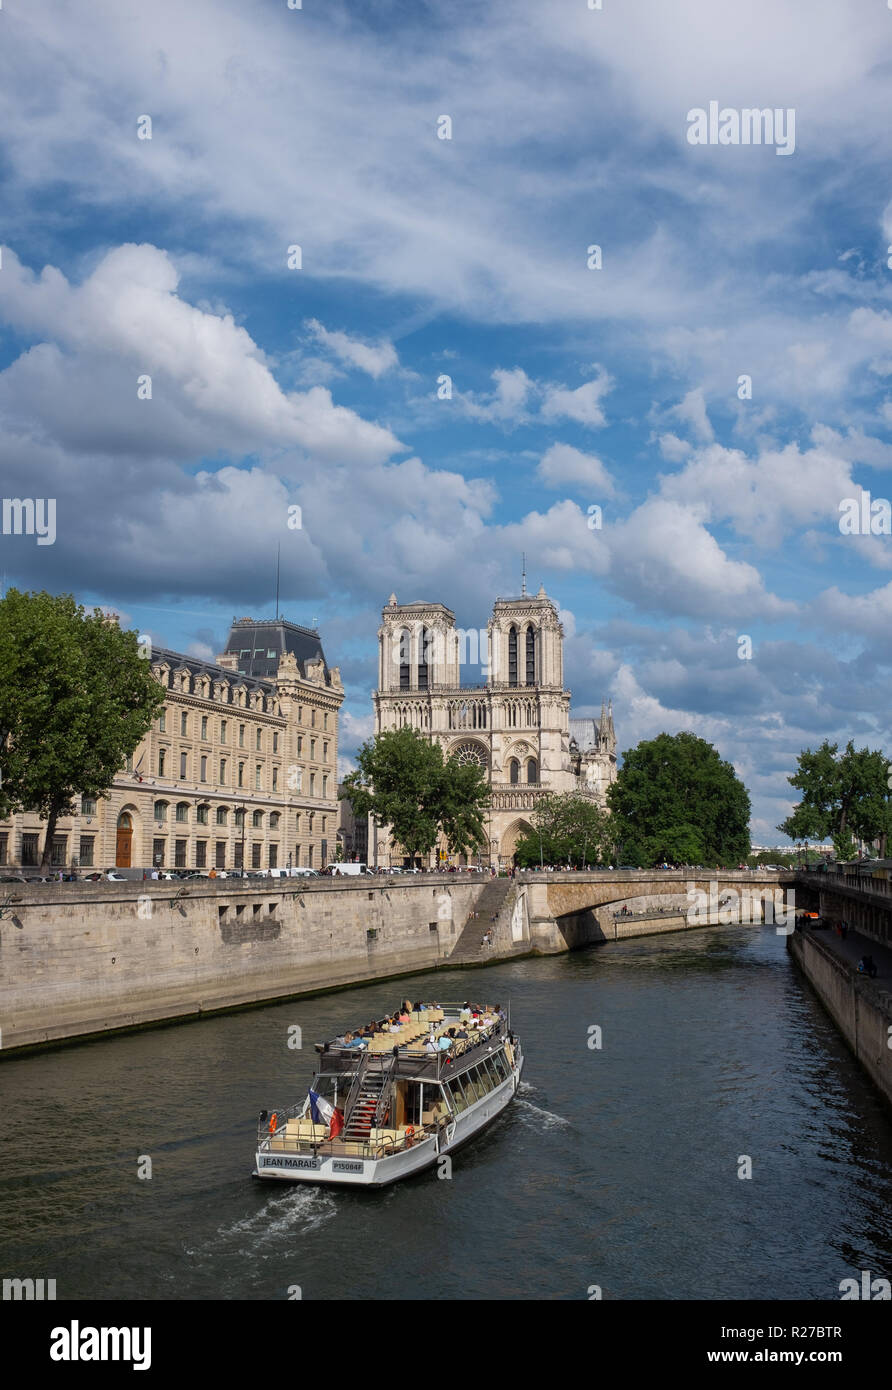 Sightseeing boat moving on river Seine near Notre-Dame de Paris cathedral, Paris, France - Stock Image